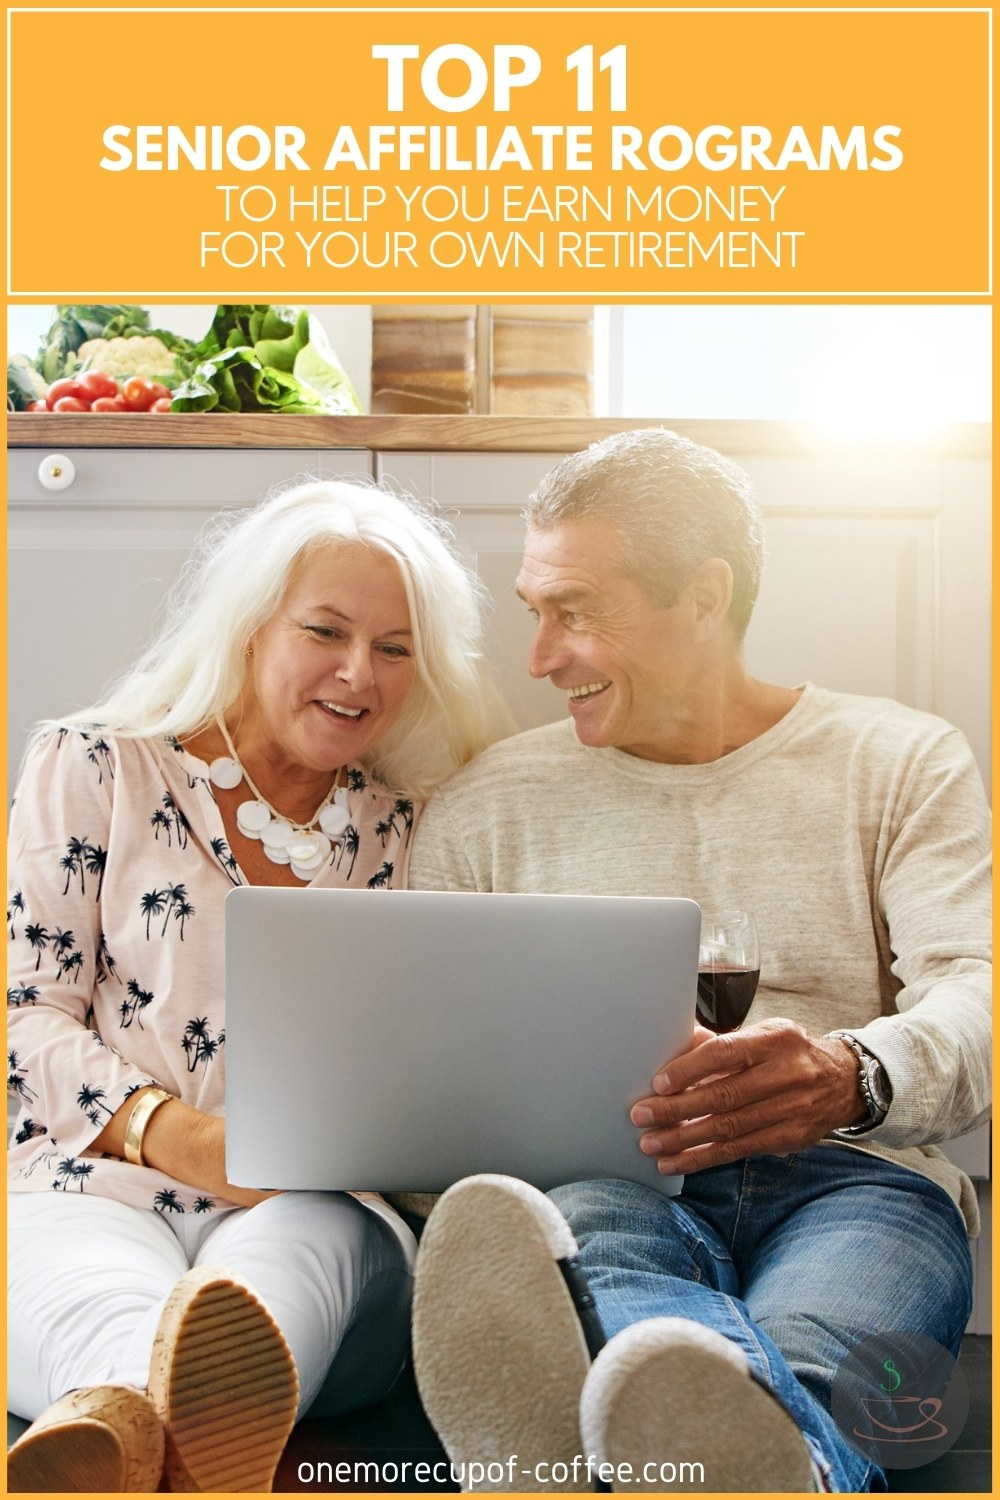 """happy elderly couple sitting on the floor together with an open laptop and wine, with text overlay """"Top 11 Senior Affiliate Programs To Help You Earn Money For Your Own Retirement"""""""